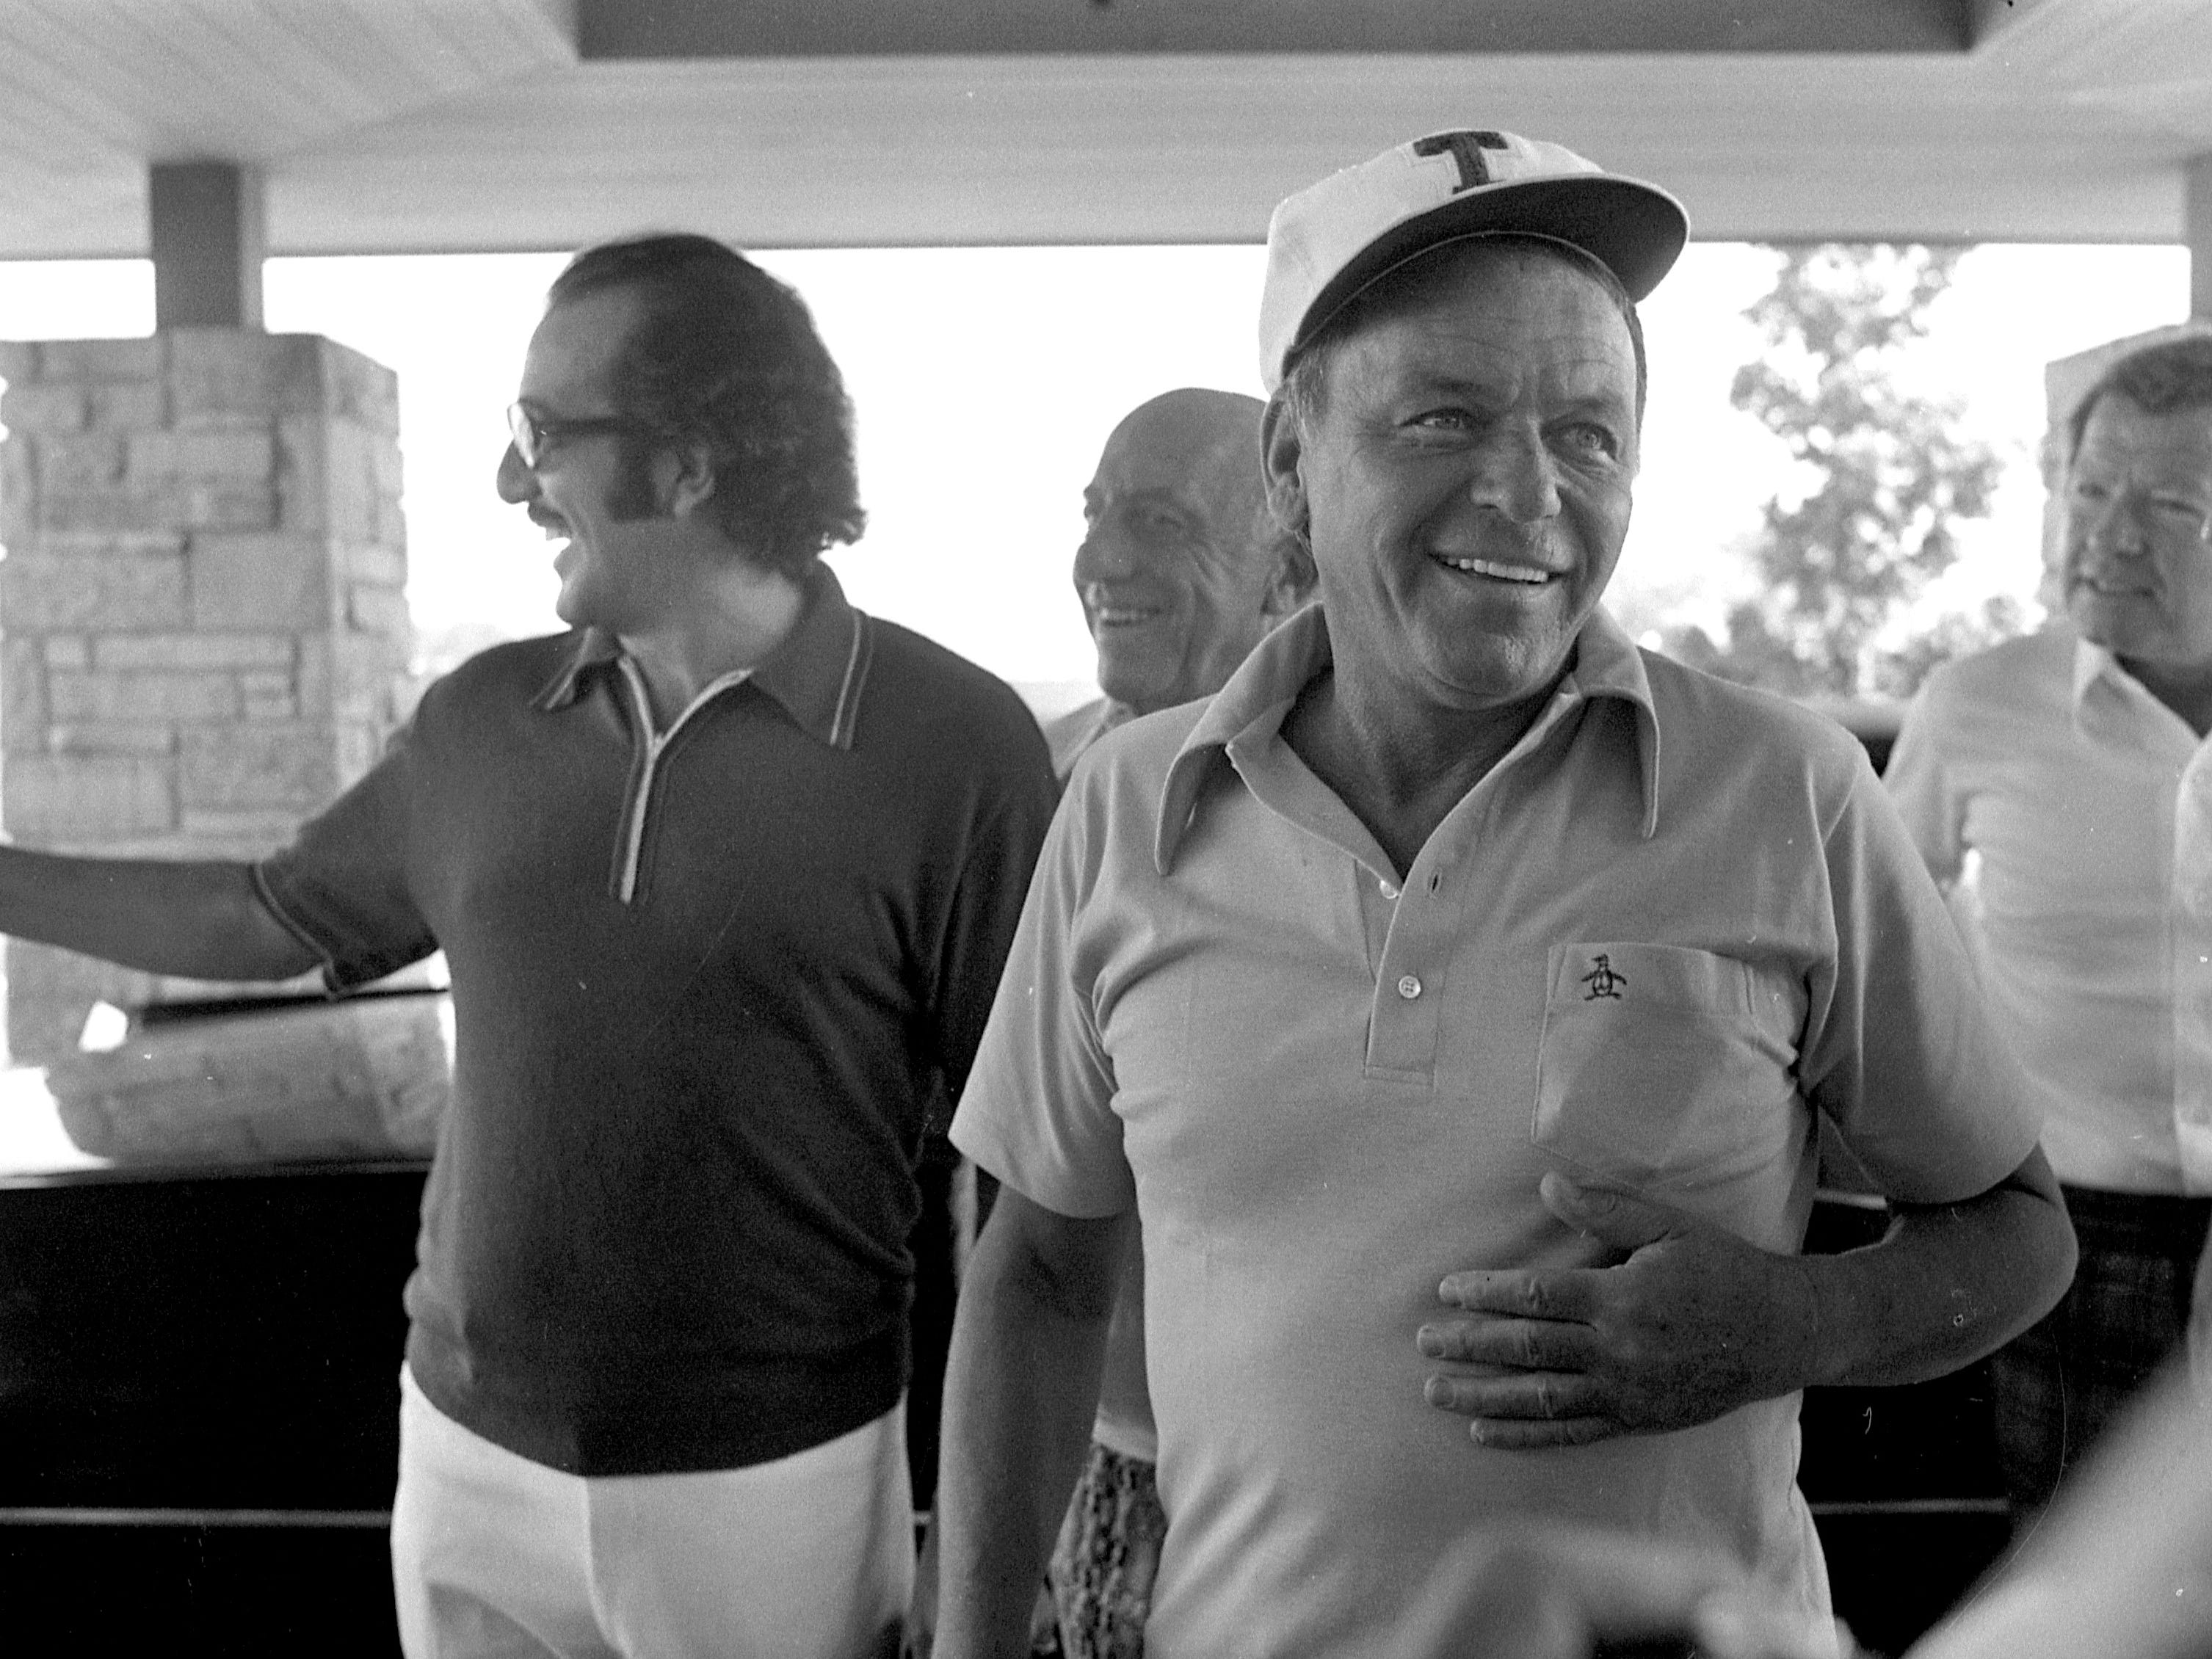 Frank Sinatra is all smiles at Tuckaway Country Club on Aug. 27, 1973, where he played in the National Italian Invitational Golf Tournament for Charities. It was the first time Sinatra had been in Milwaukee since he was touring with the Tommy Dorsey Orchestra in 1940. This photo is published in the Aug. 28, 1973, Milwaukee Journal.